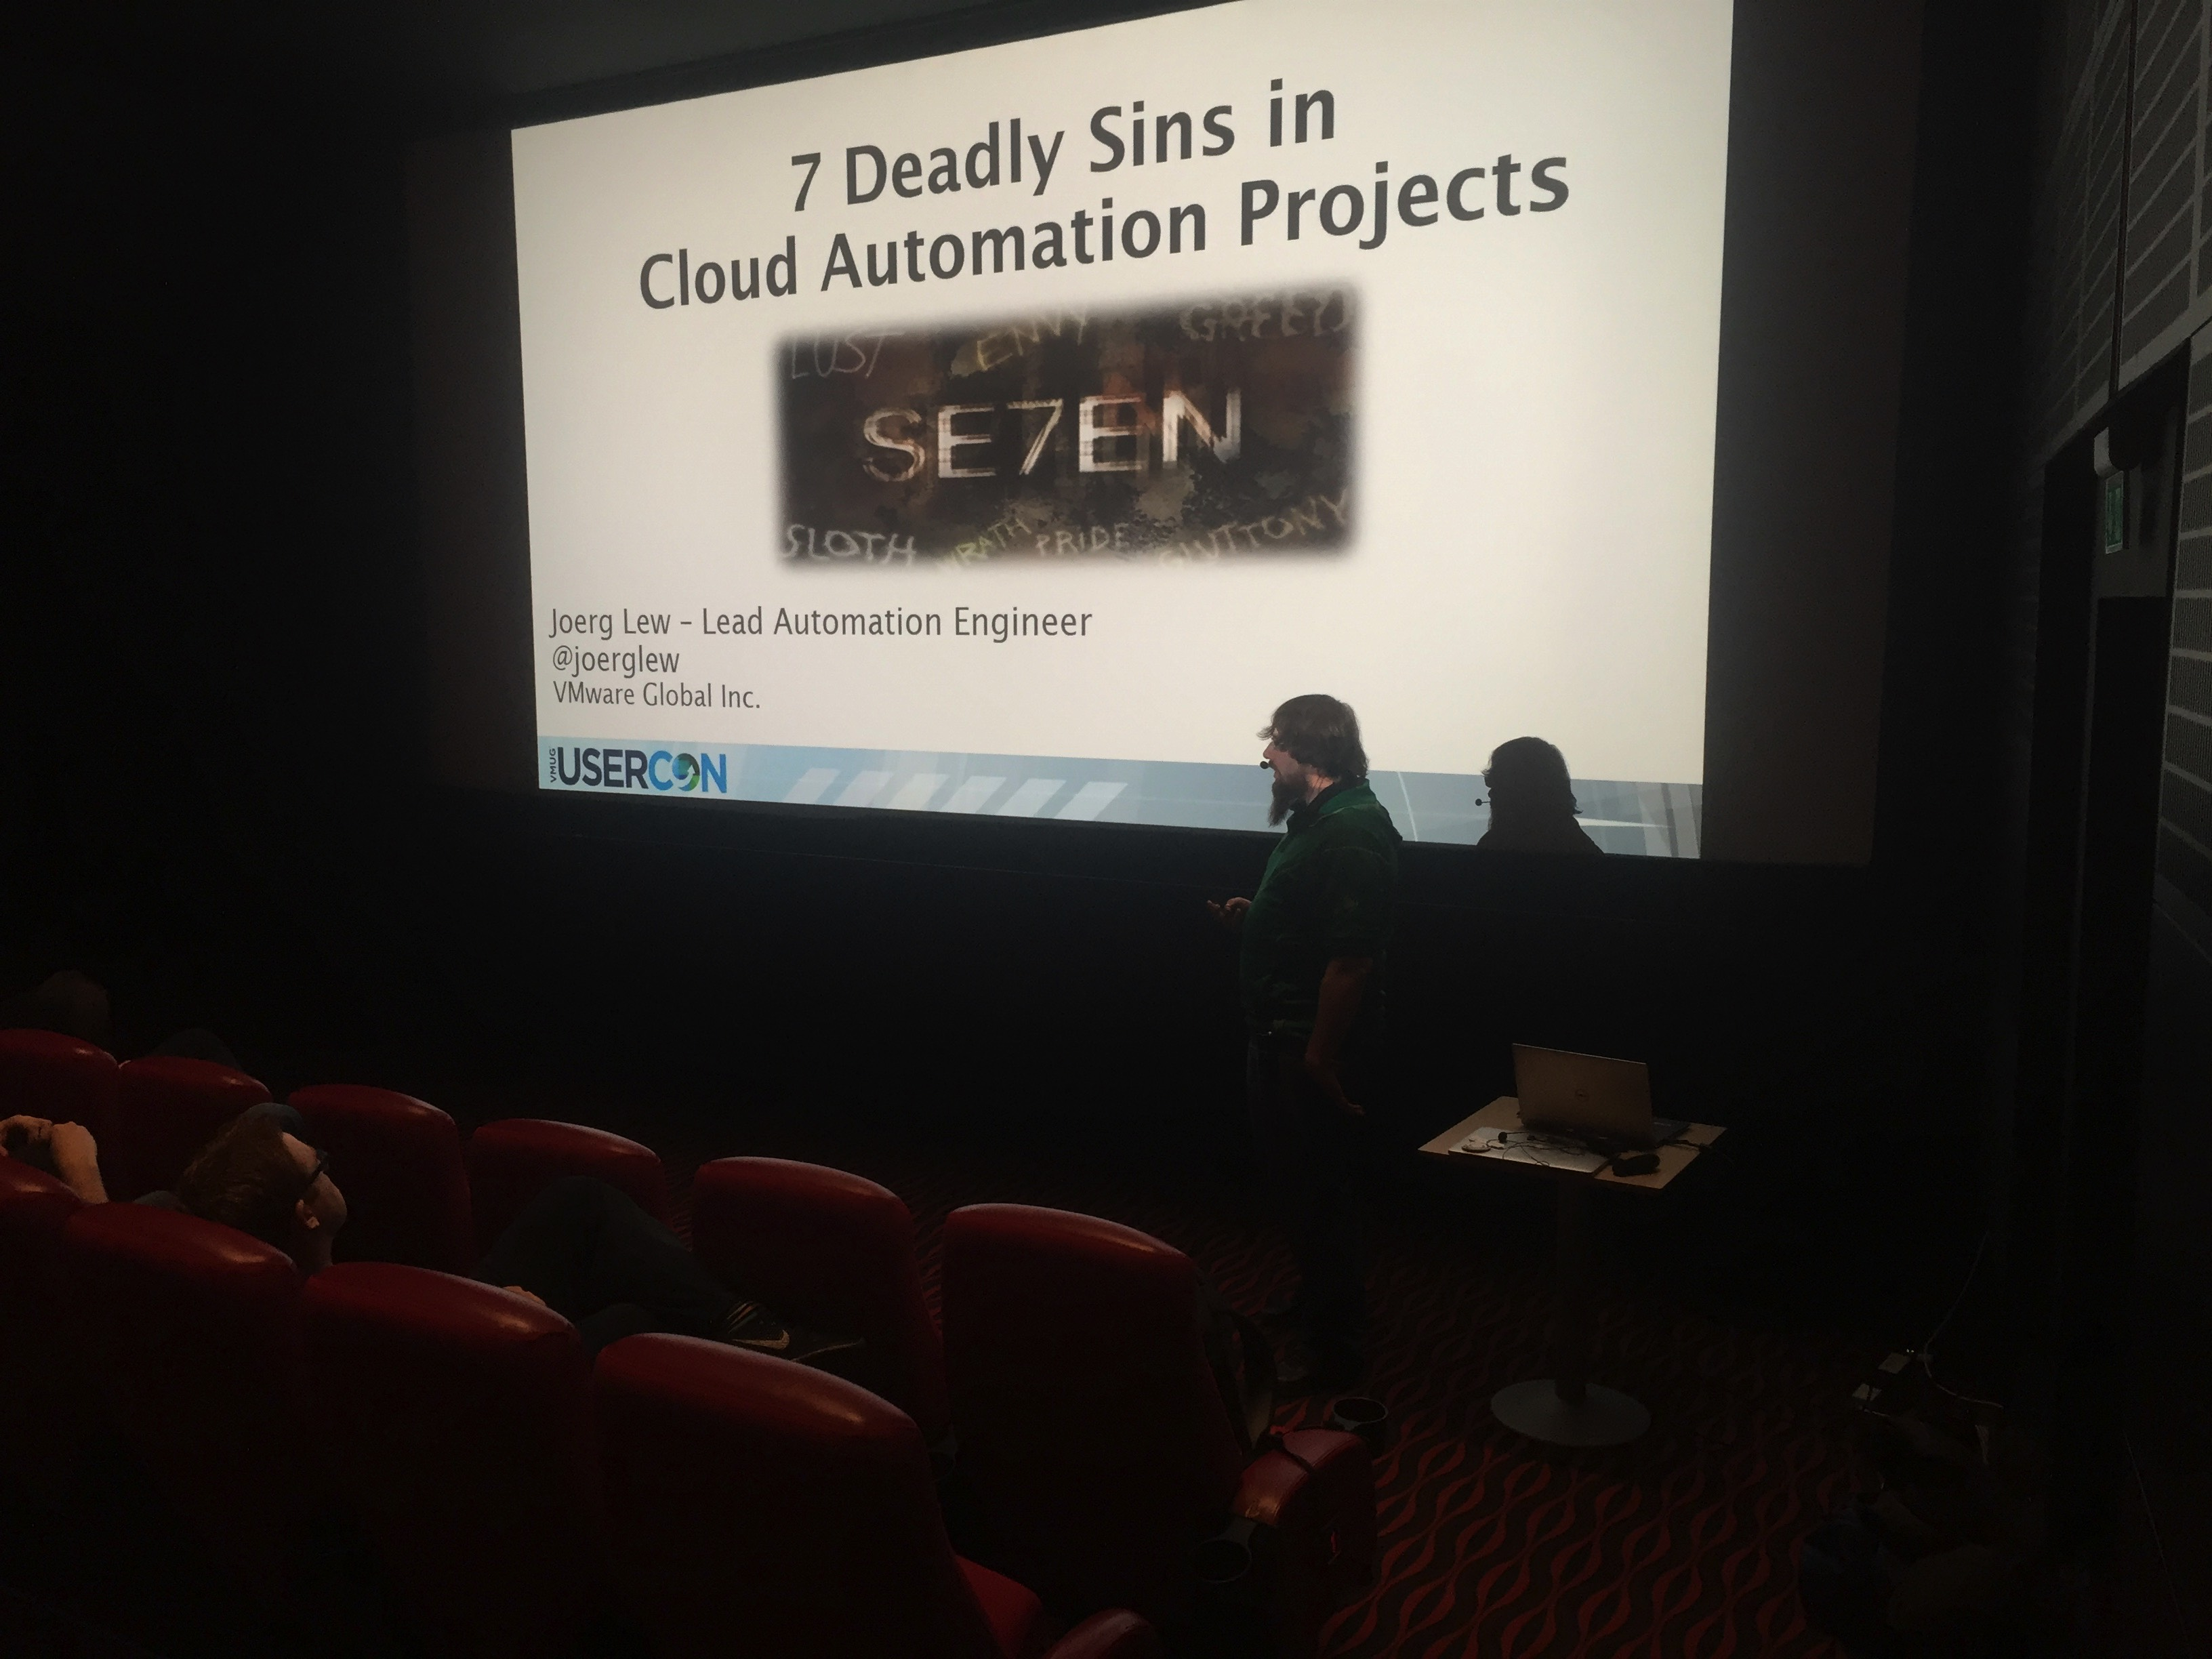 7 Deadly Sins in Cloud Automation Projects